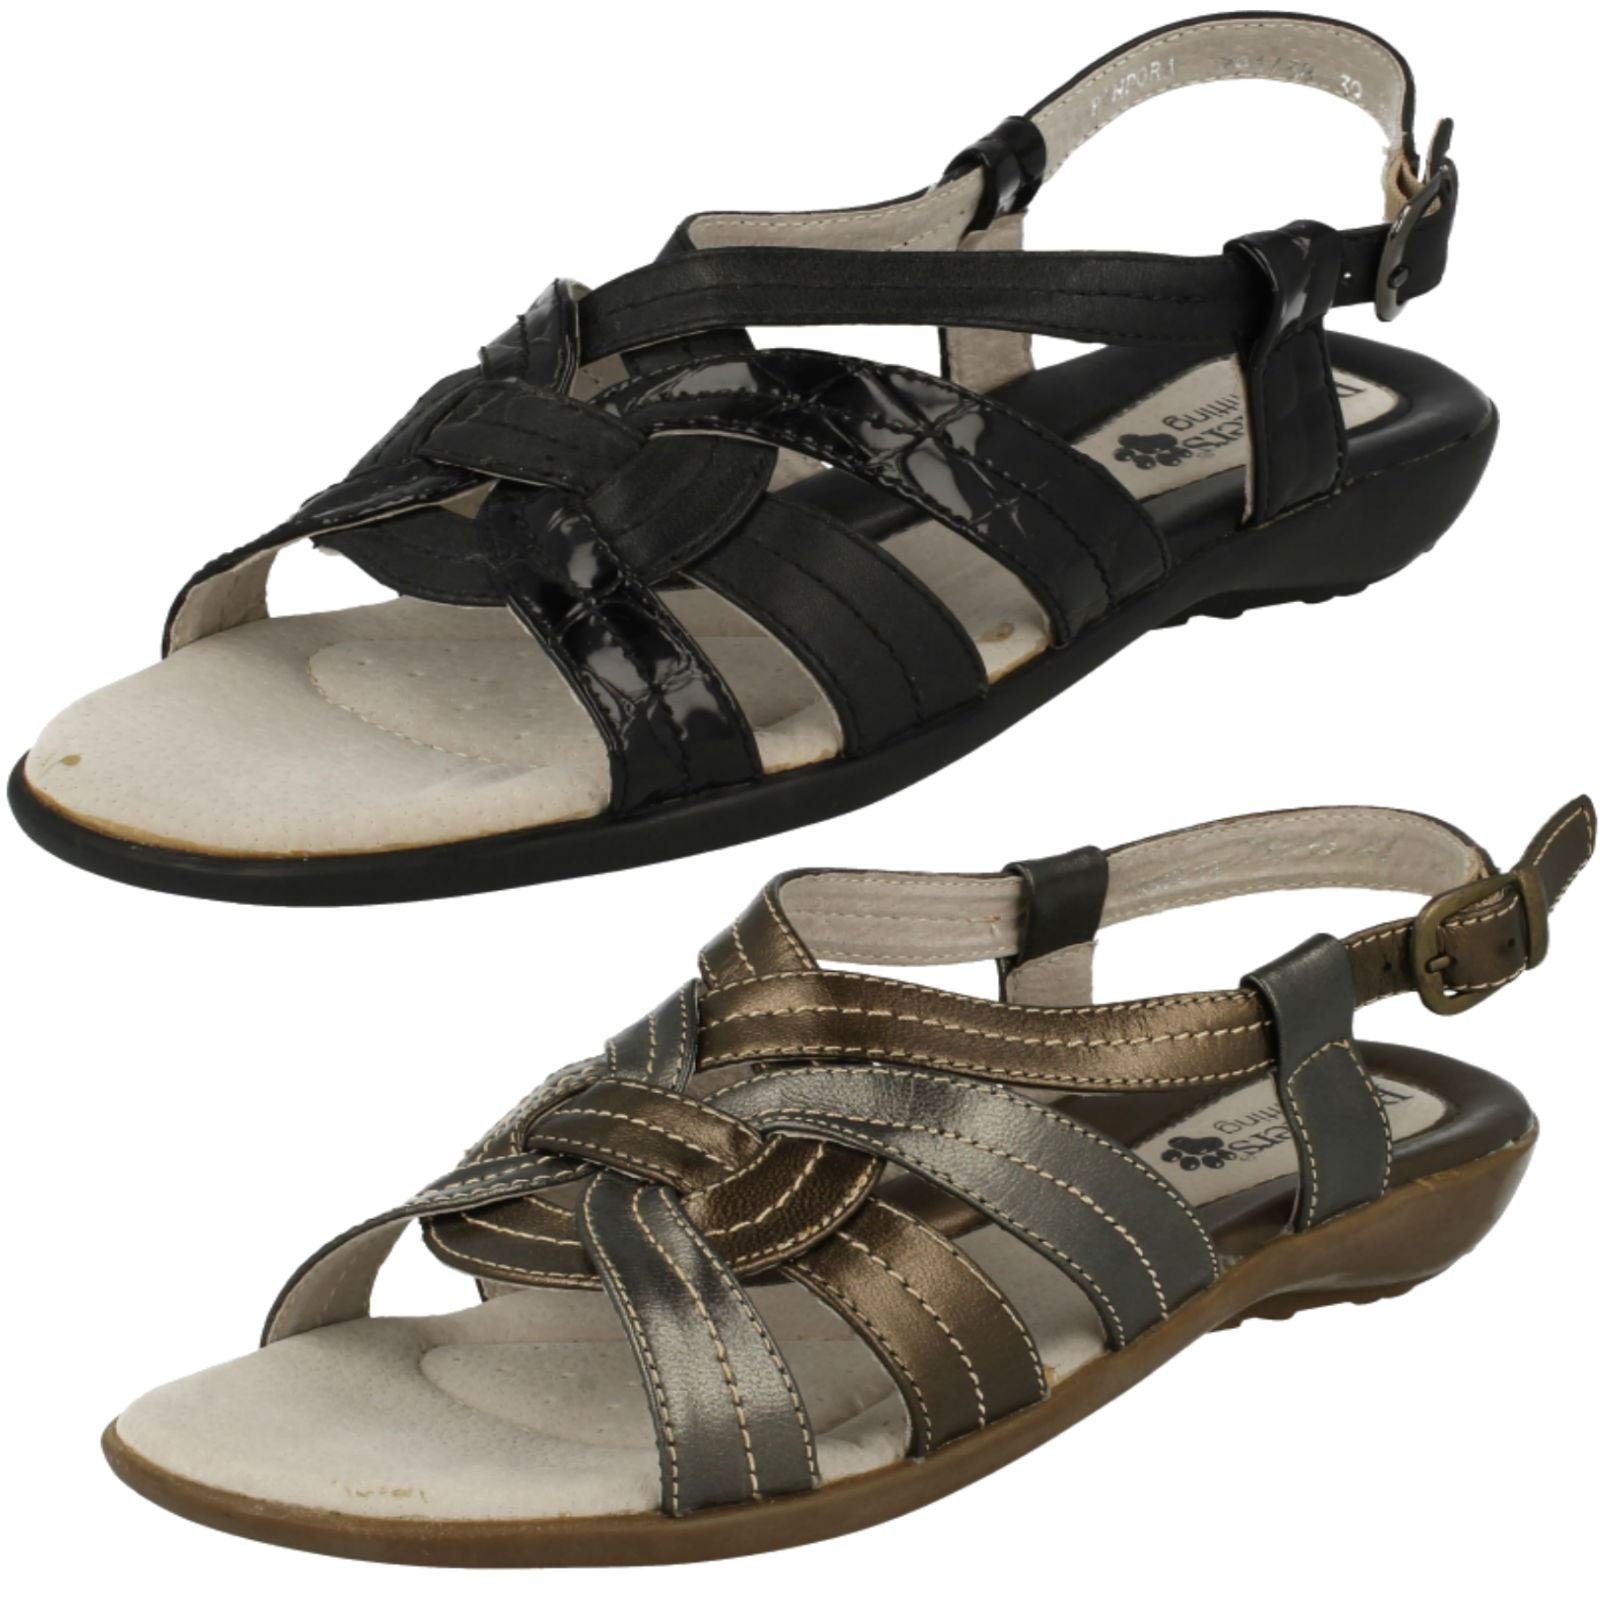 21a2a340023e2 Details about Padders Ladies Wide Fitting Sandals Pandora